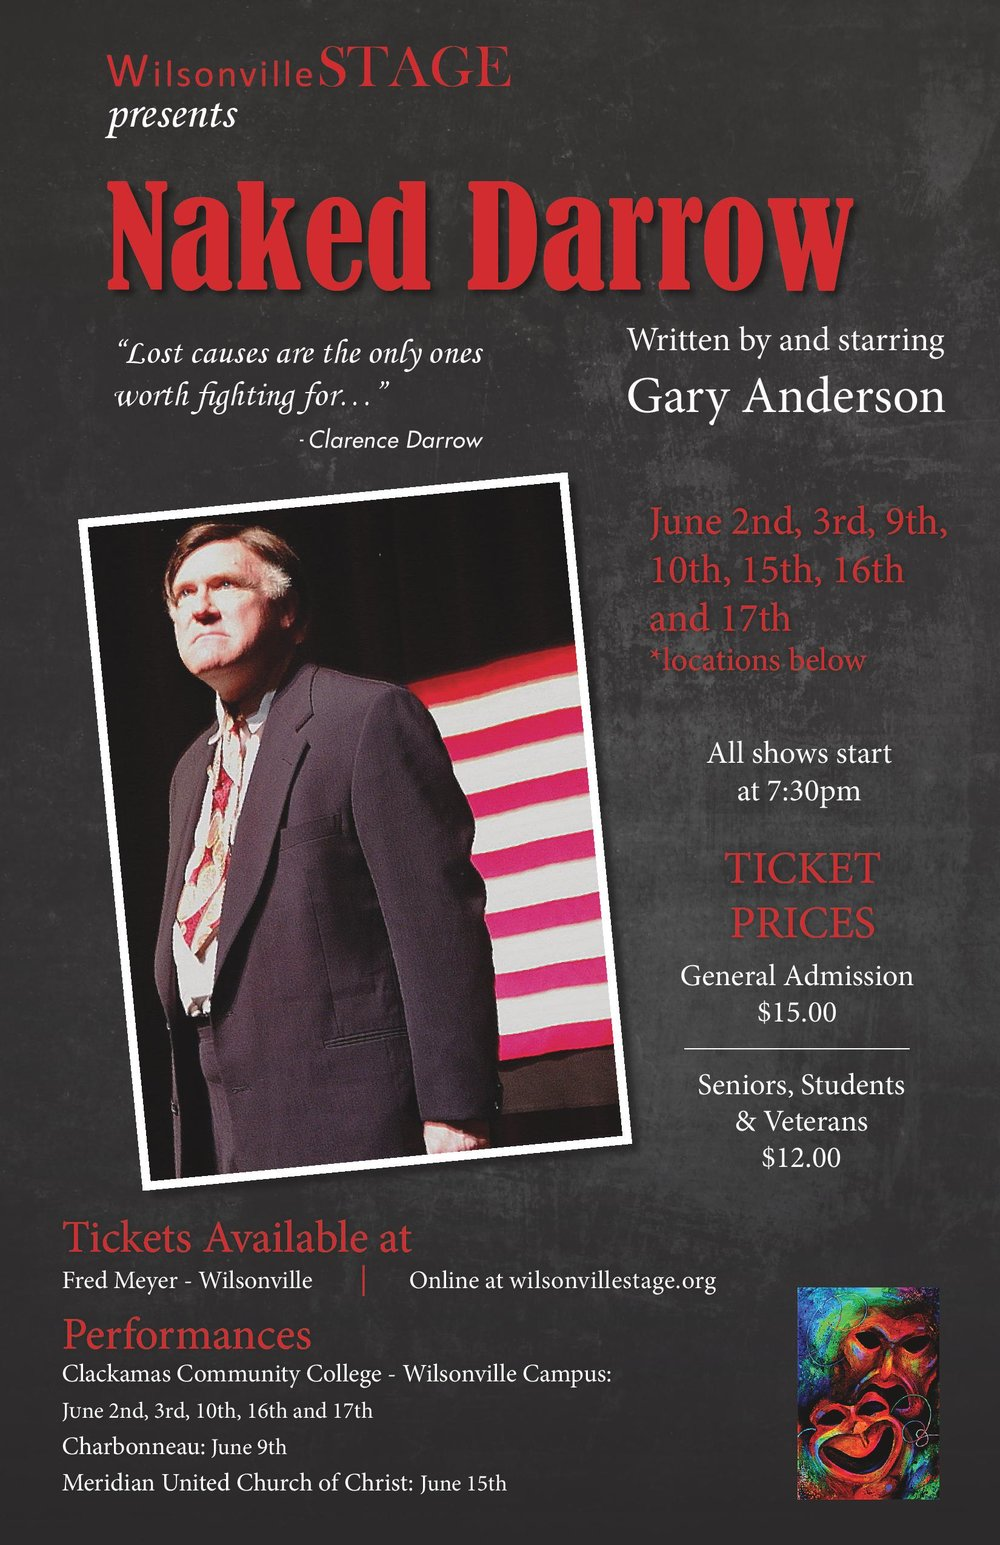 Naked Darrow - Written and Starring Gary Anderson